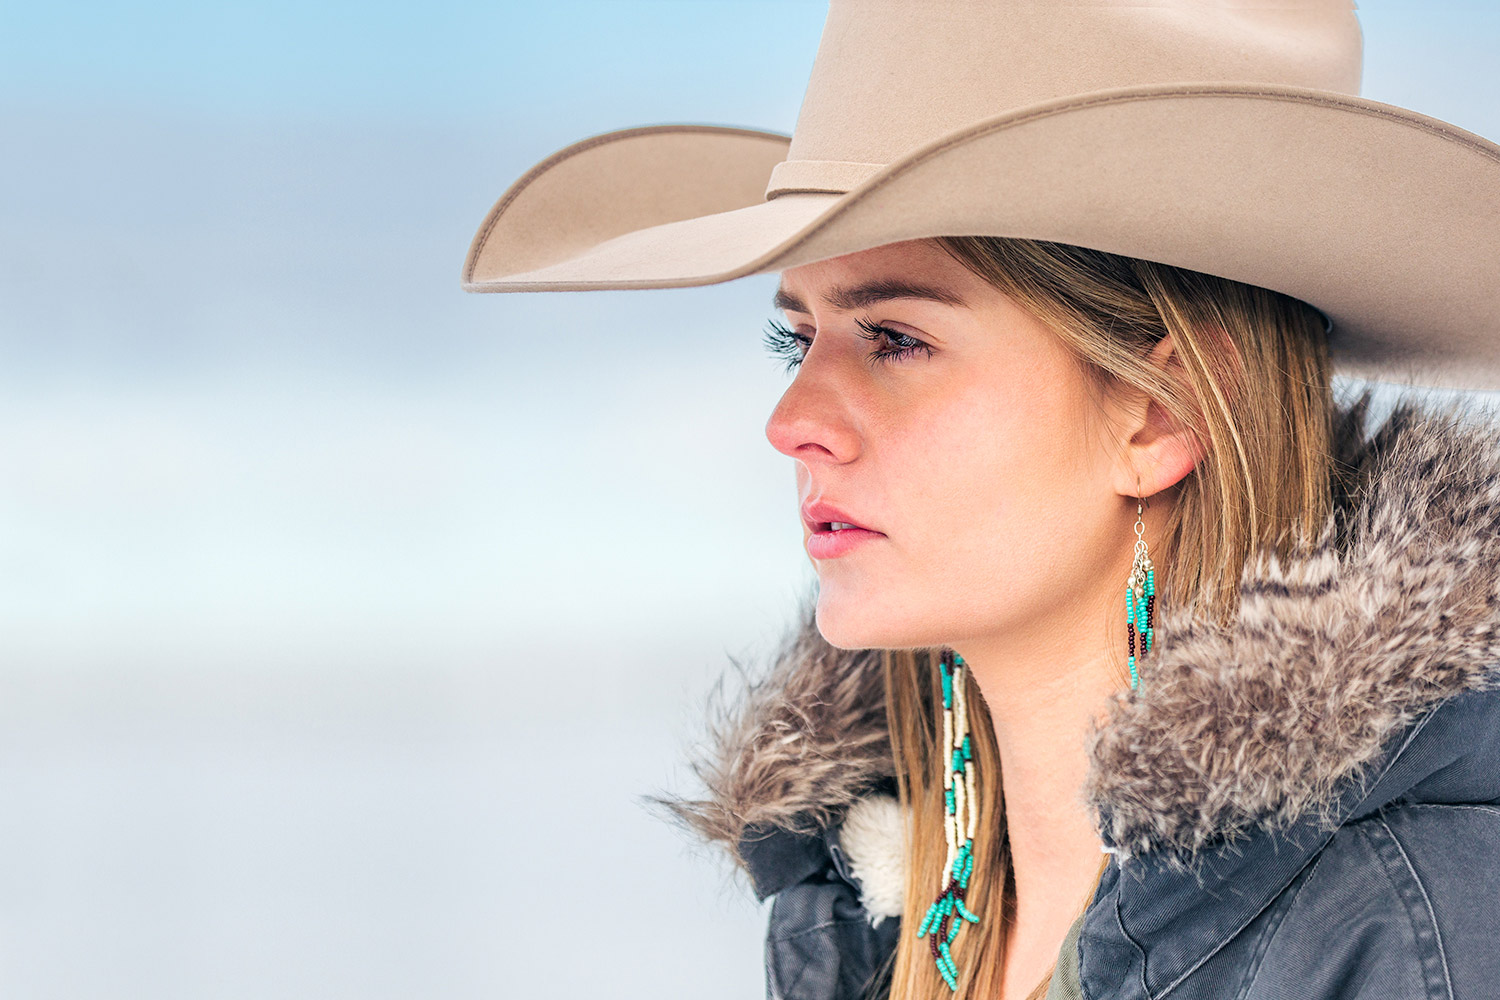 A portrait photo of a cowgirl on a ranch near Bozeman, Montana. See more cowgirl photos at:  Cowgirl Photos